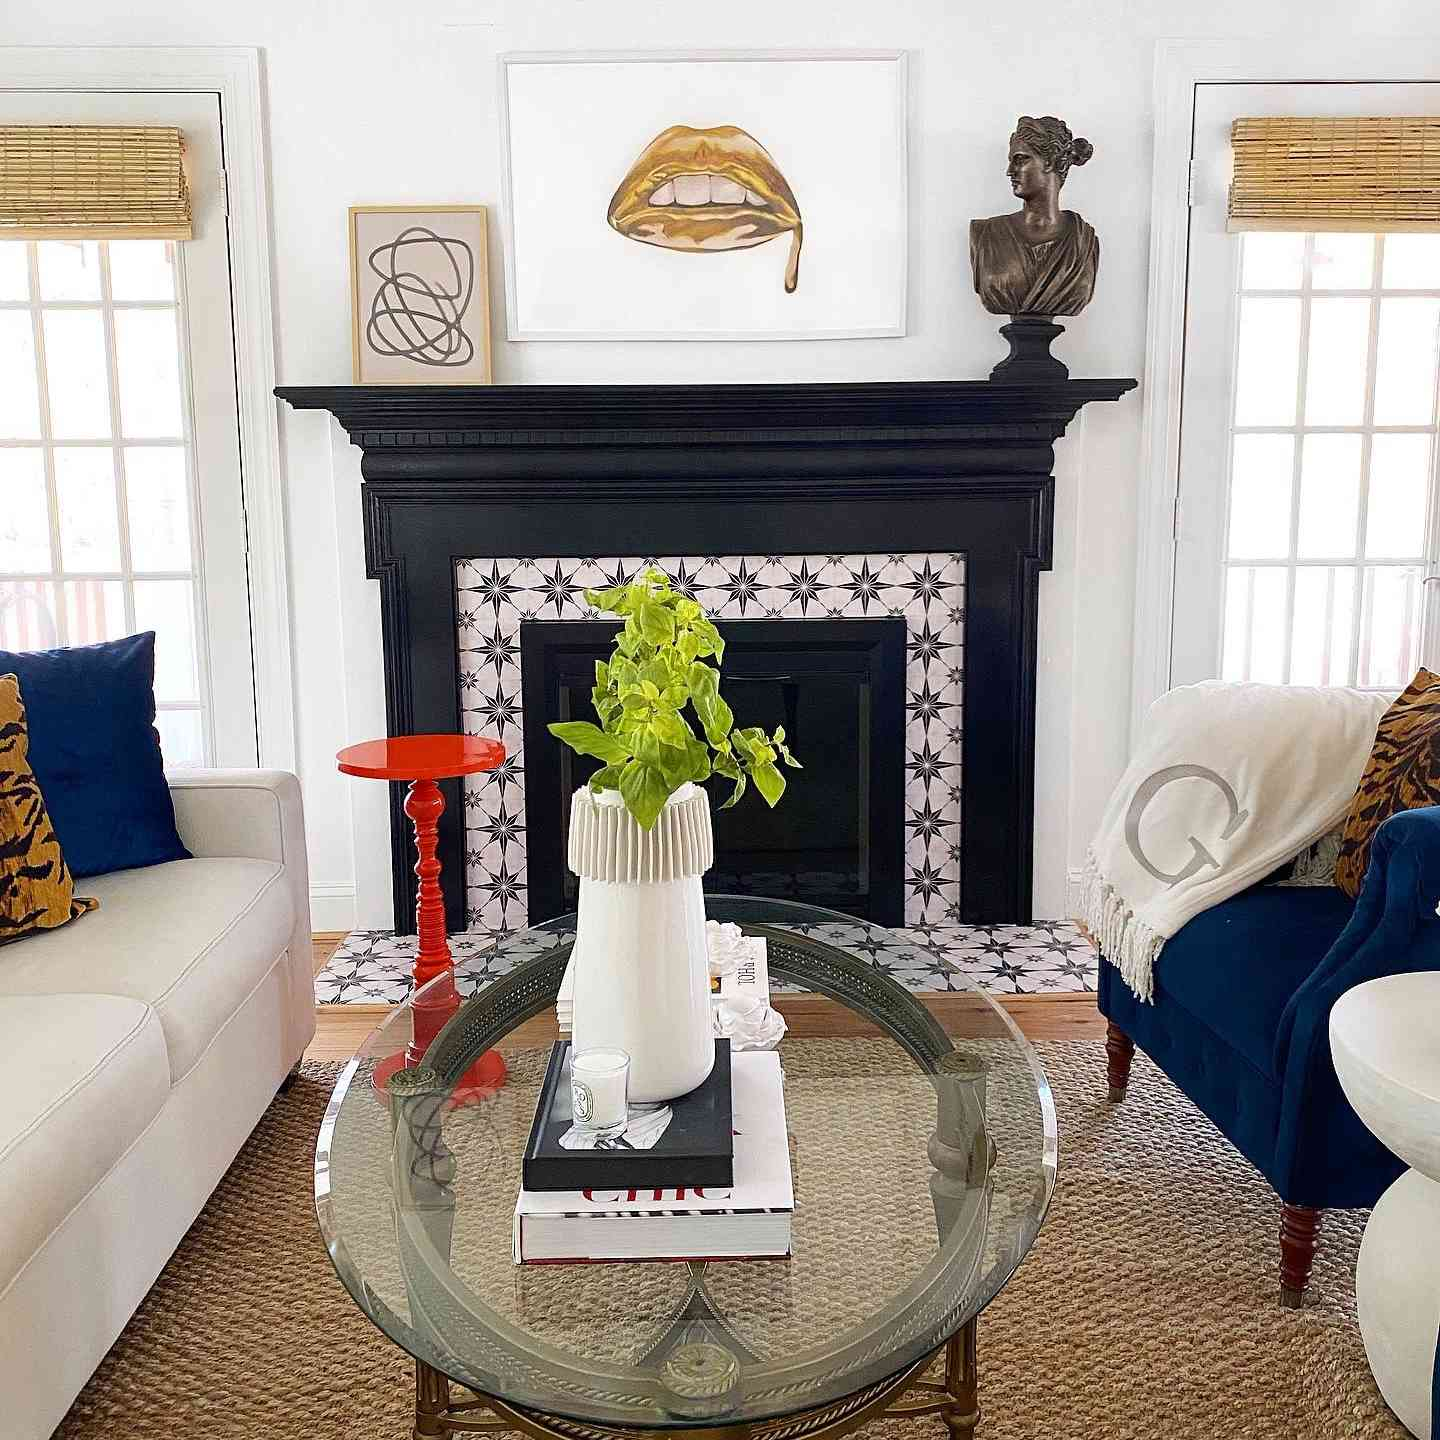 Fireplace with modern tile